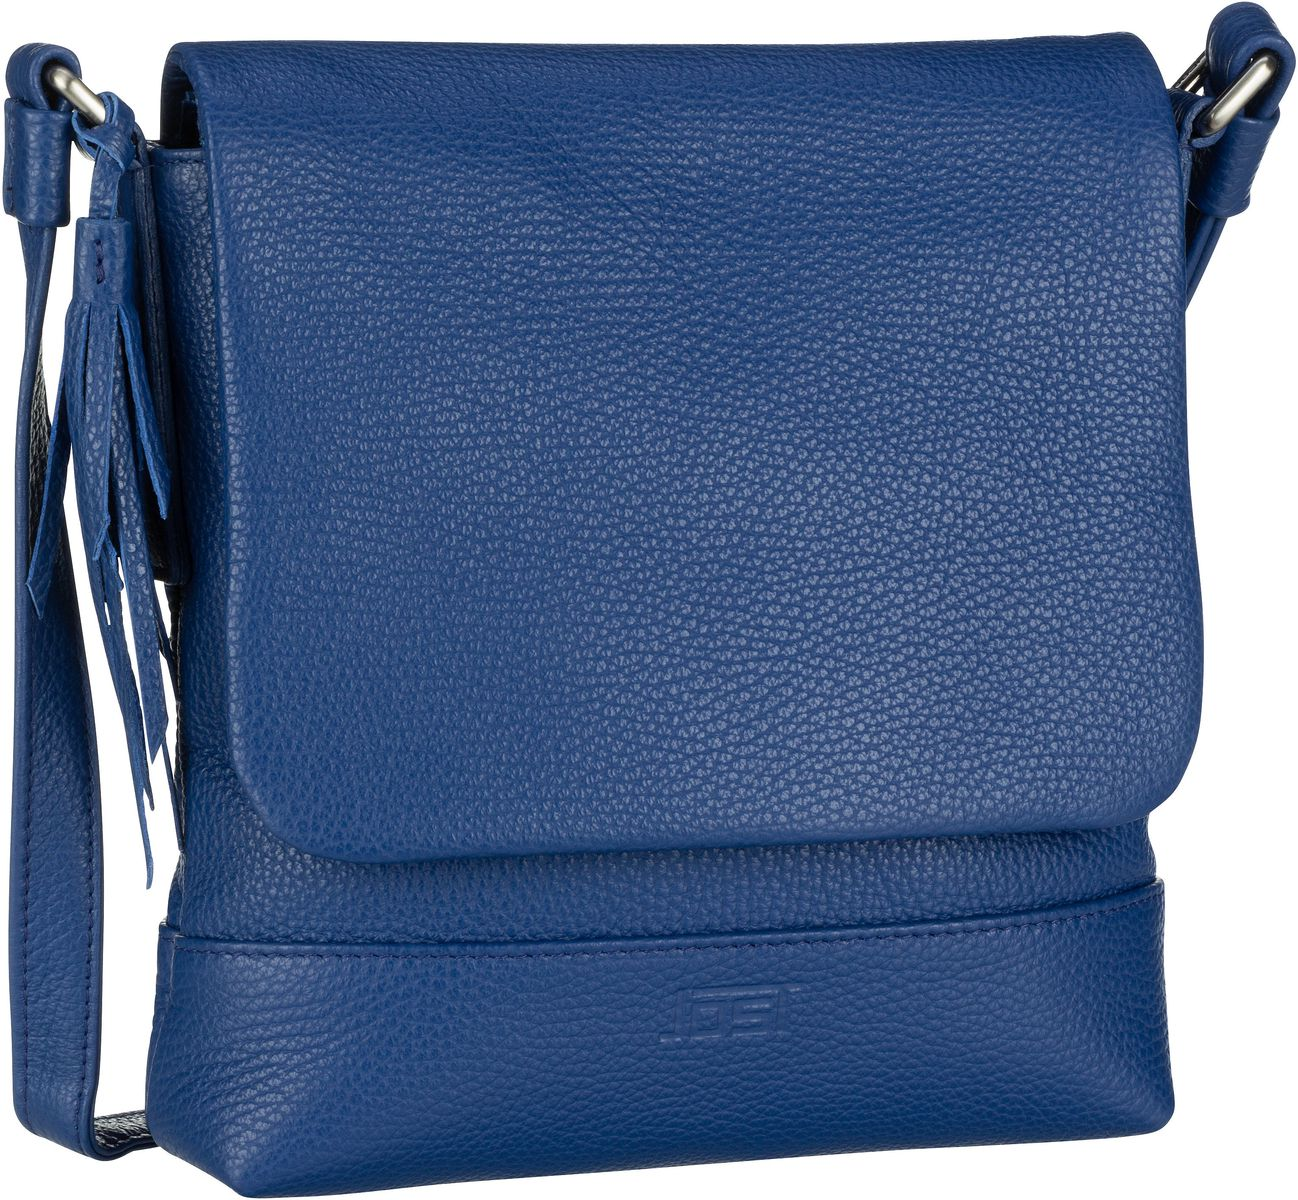 Umhängetasche Vika 1922 Shoulder Bag S Royalblue